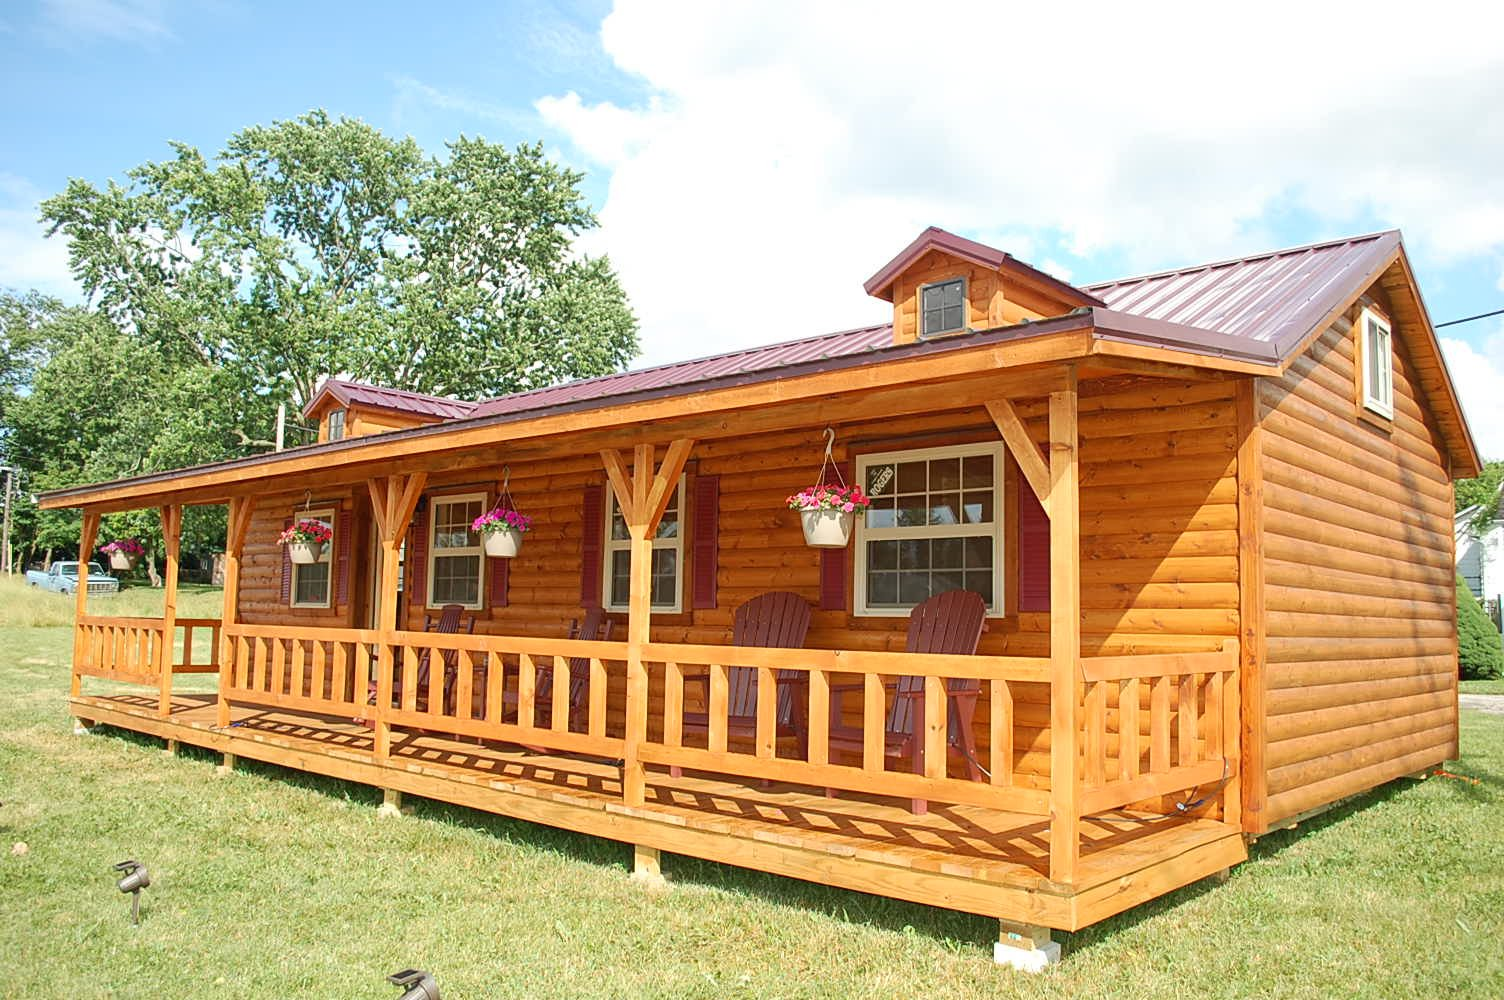 amish cabin company - Tiny Log Cabin Kits